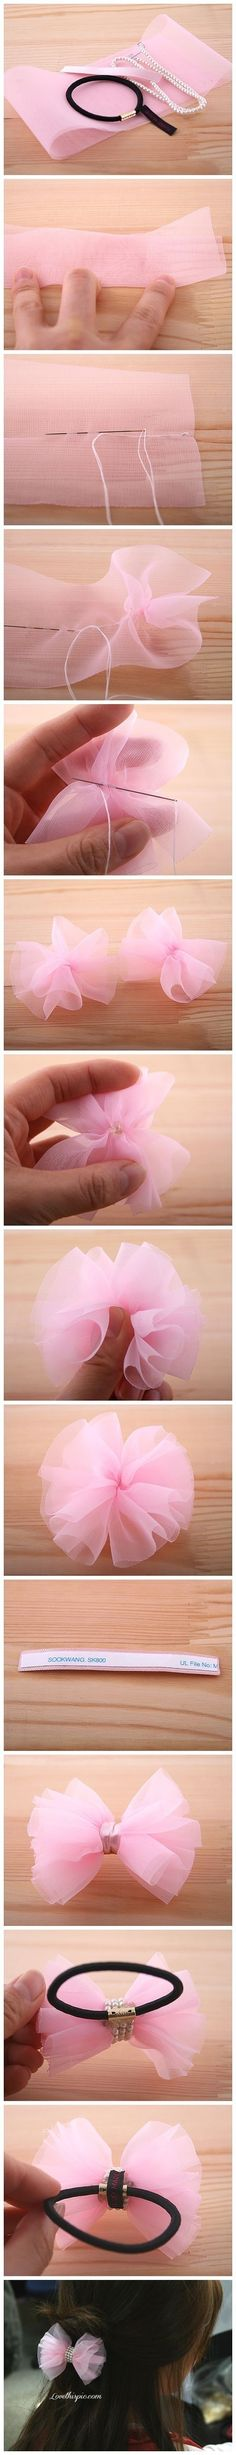 DIY Hair Bow diy crafts craft ideas easy crafts diy ideas crafty easy diy craft jewelry diy bow jewelry diy diy accesories